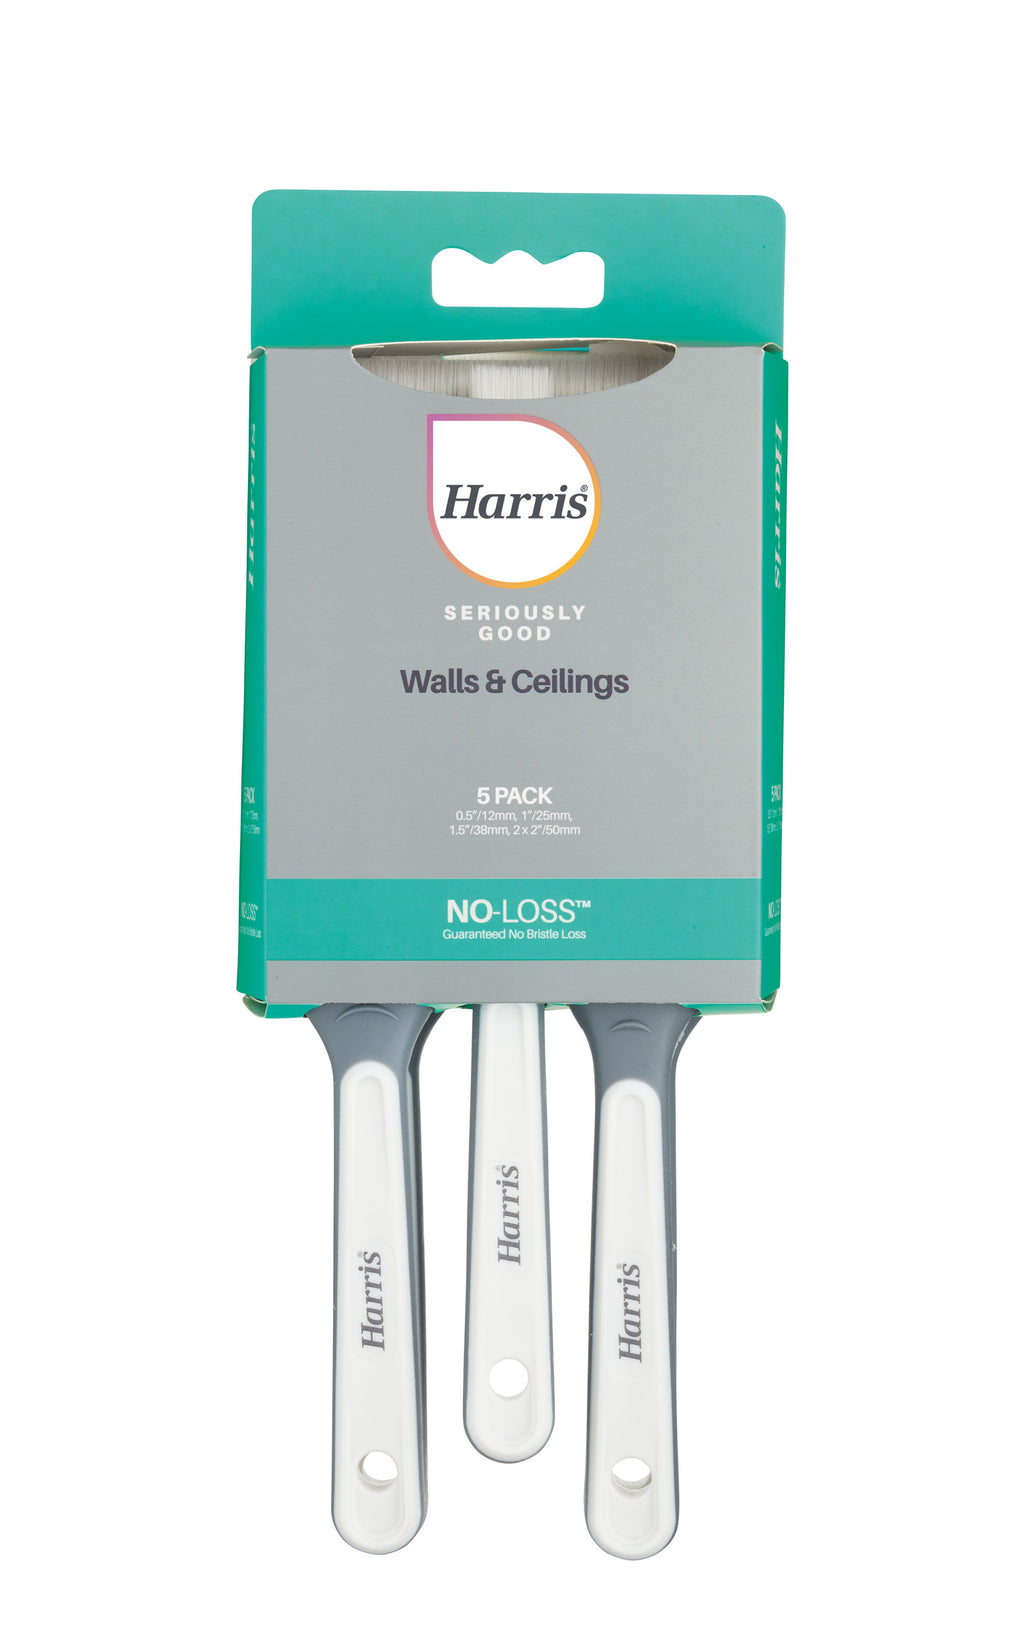 5 Pack Harris Seriously Good Walls & Ceilings Brush Set